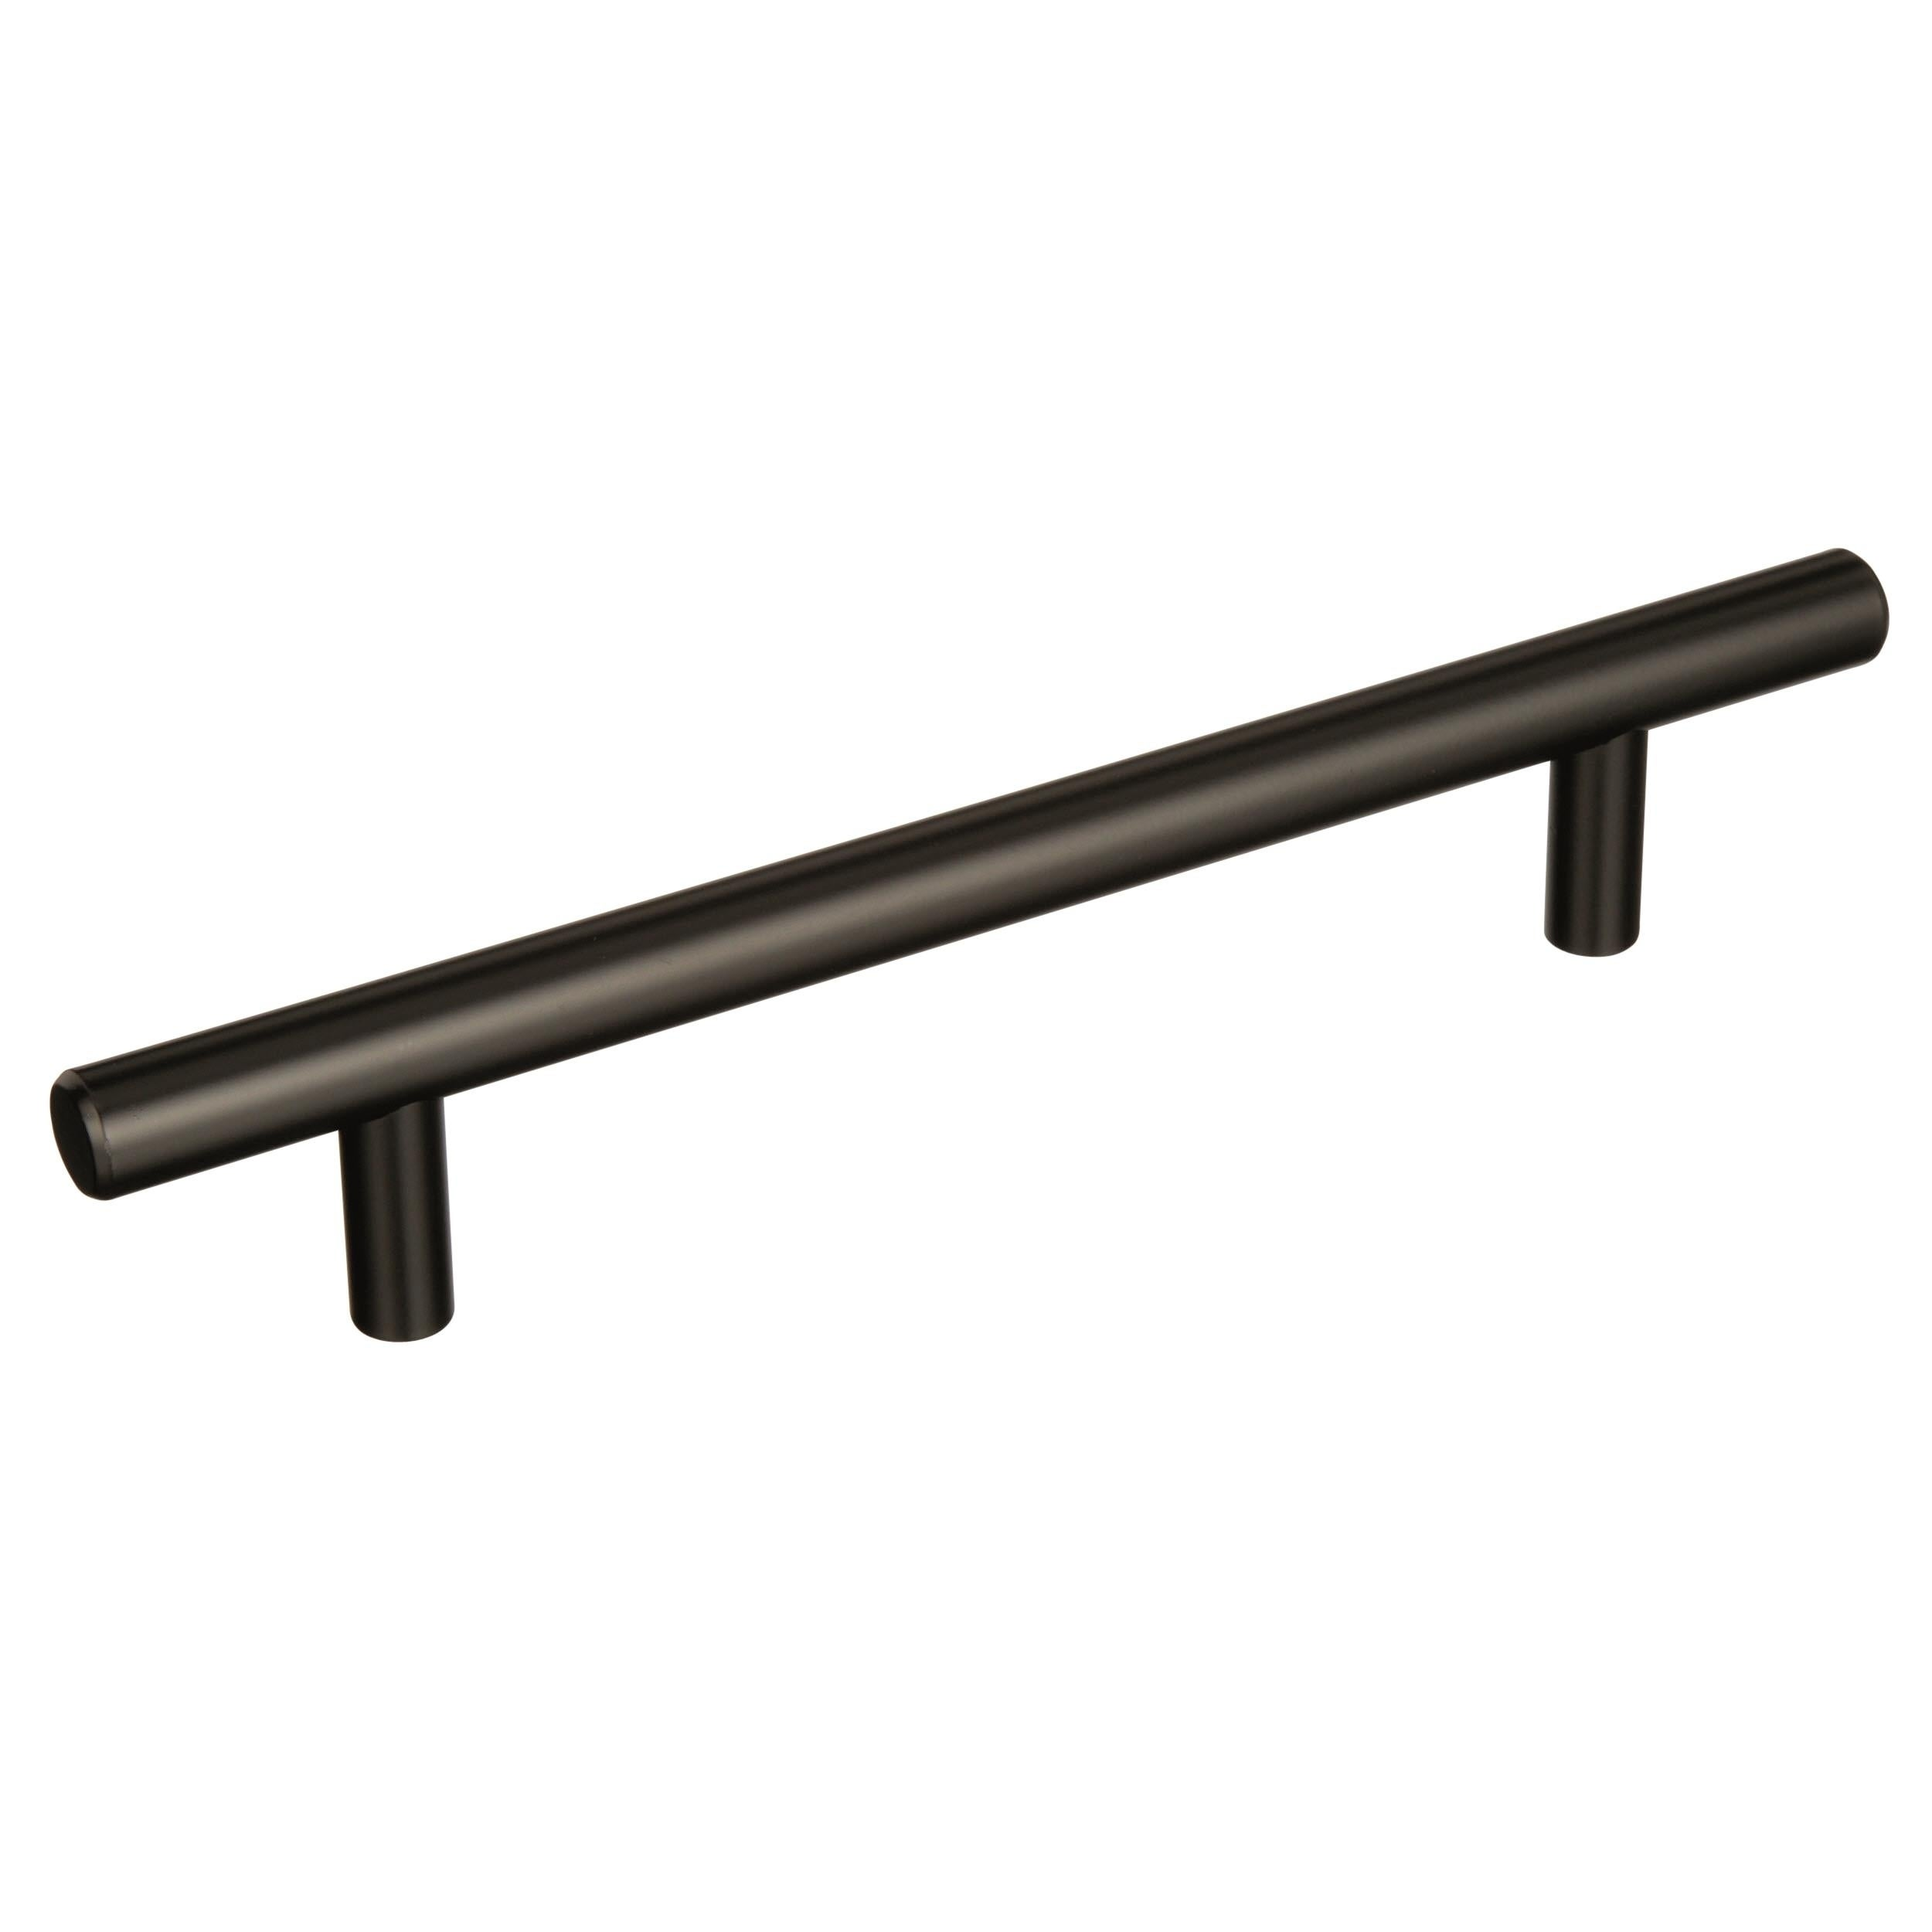 Shop Bar Pulls 5 1 16 In 128 Mm Center To Center Black Bronze Cabinet Pull Overstock 19671243